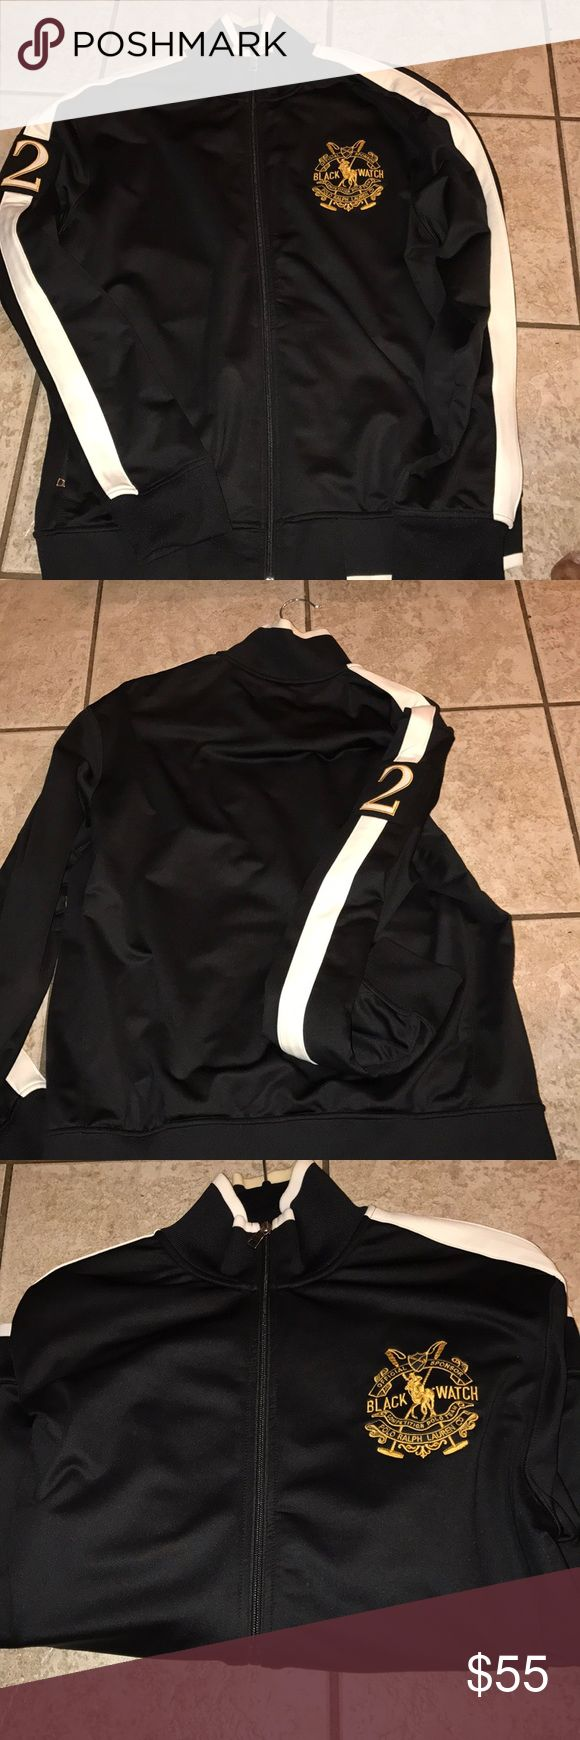 Polo sports jacket Great condition Polo by Ralph Lauren Jackets & Coats Lightweight & Shirt Jackets